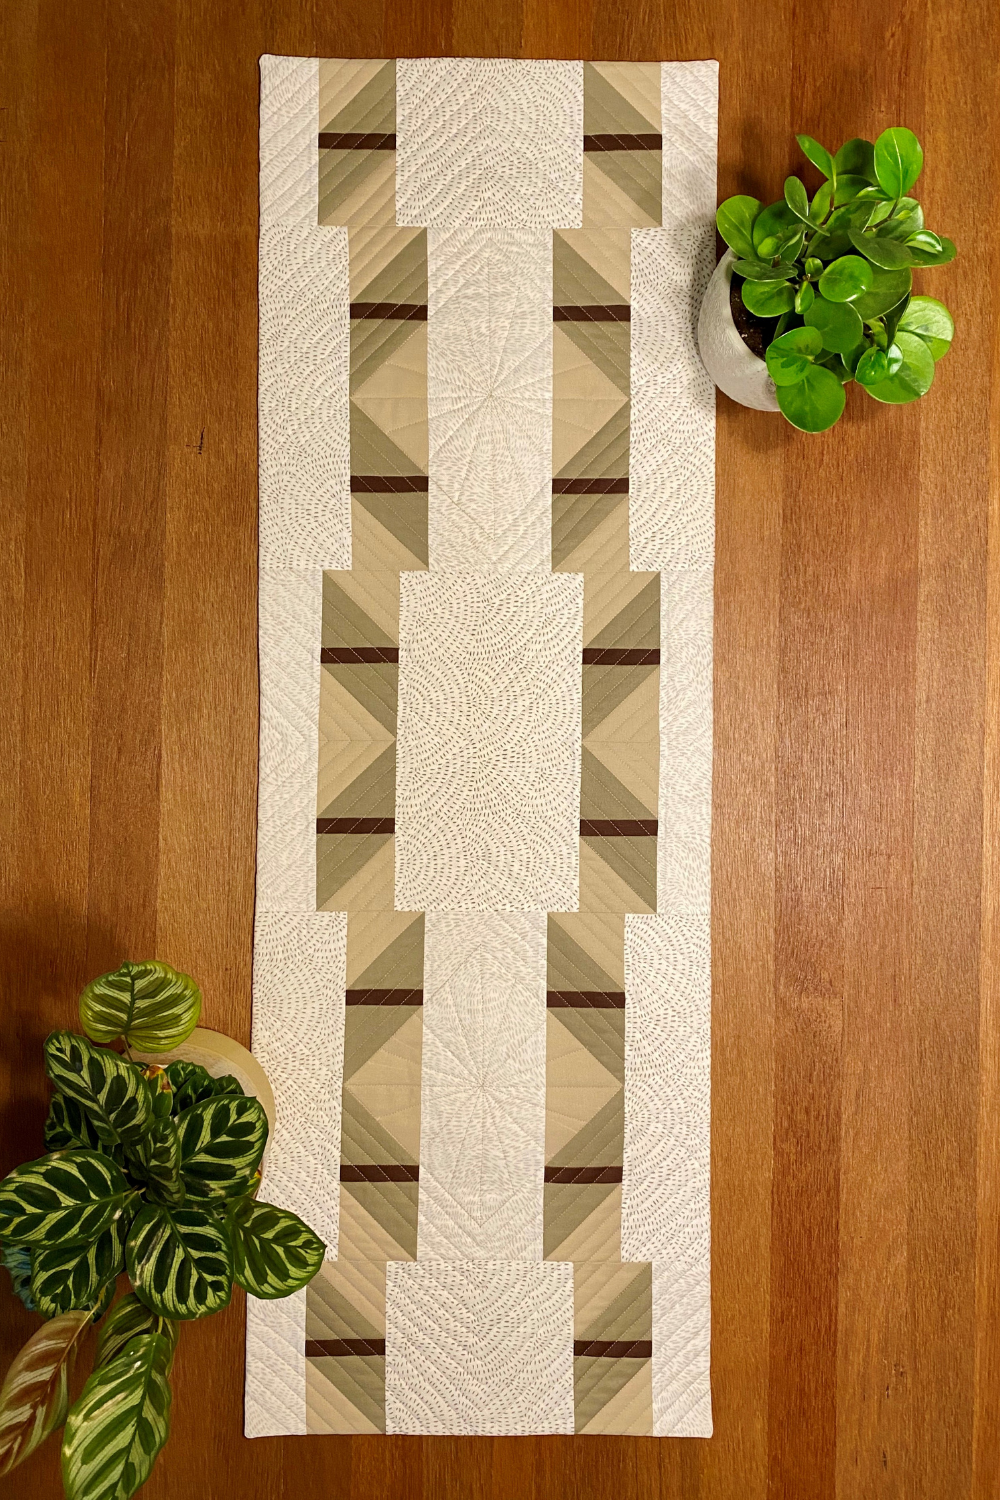 Shattered Star Table Runner - made by Laura in Low volumes and warm tones | modern quilt pattern | Shannon Fraser Designs #tablerunner